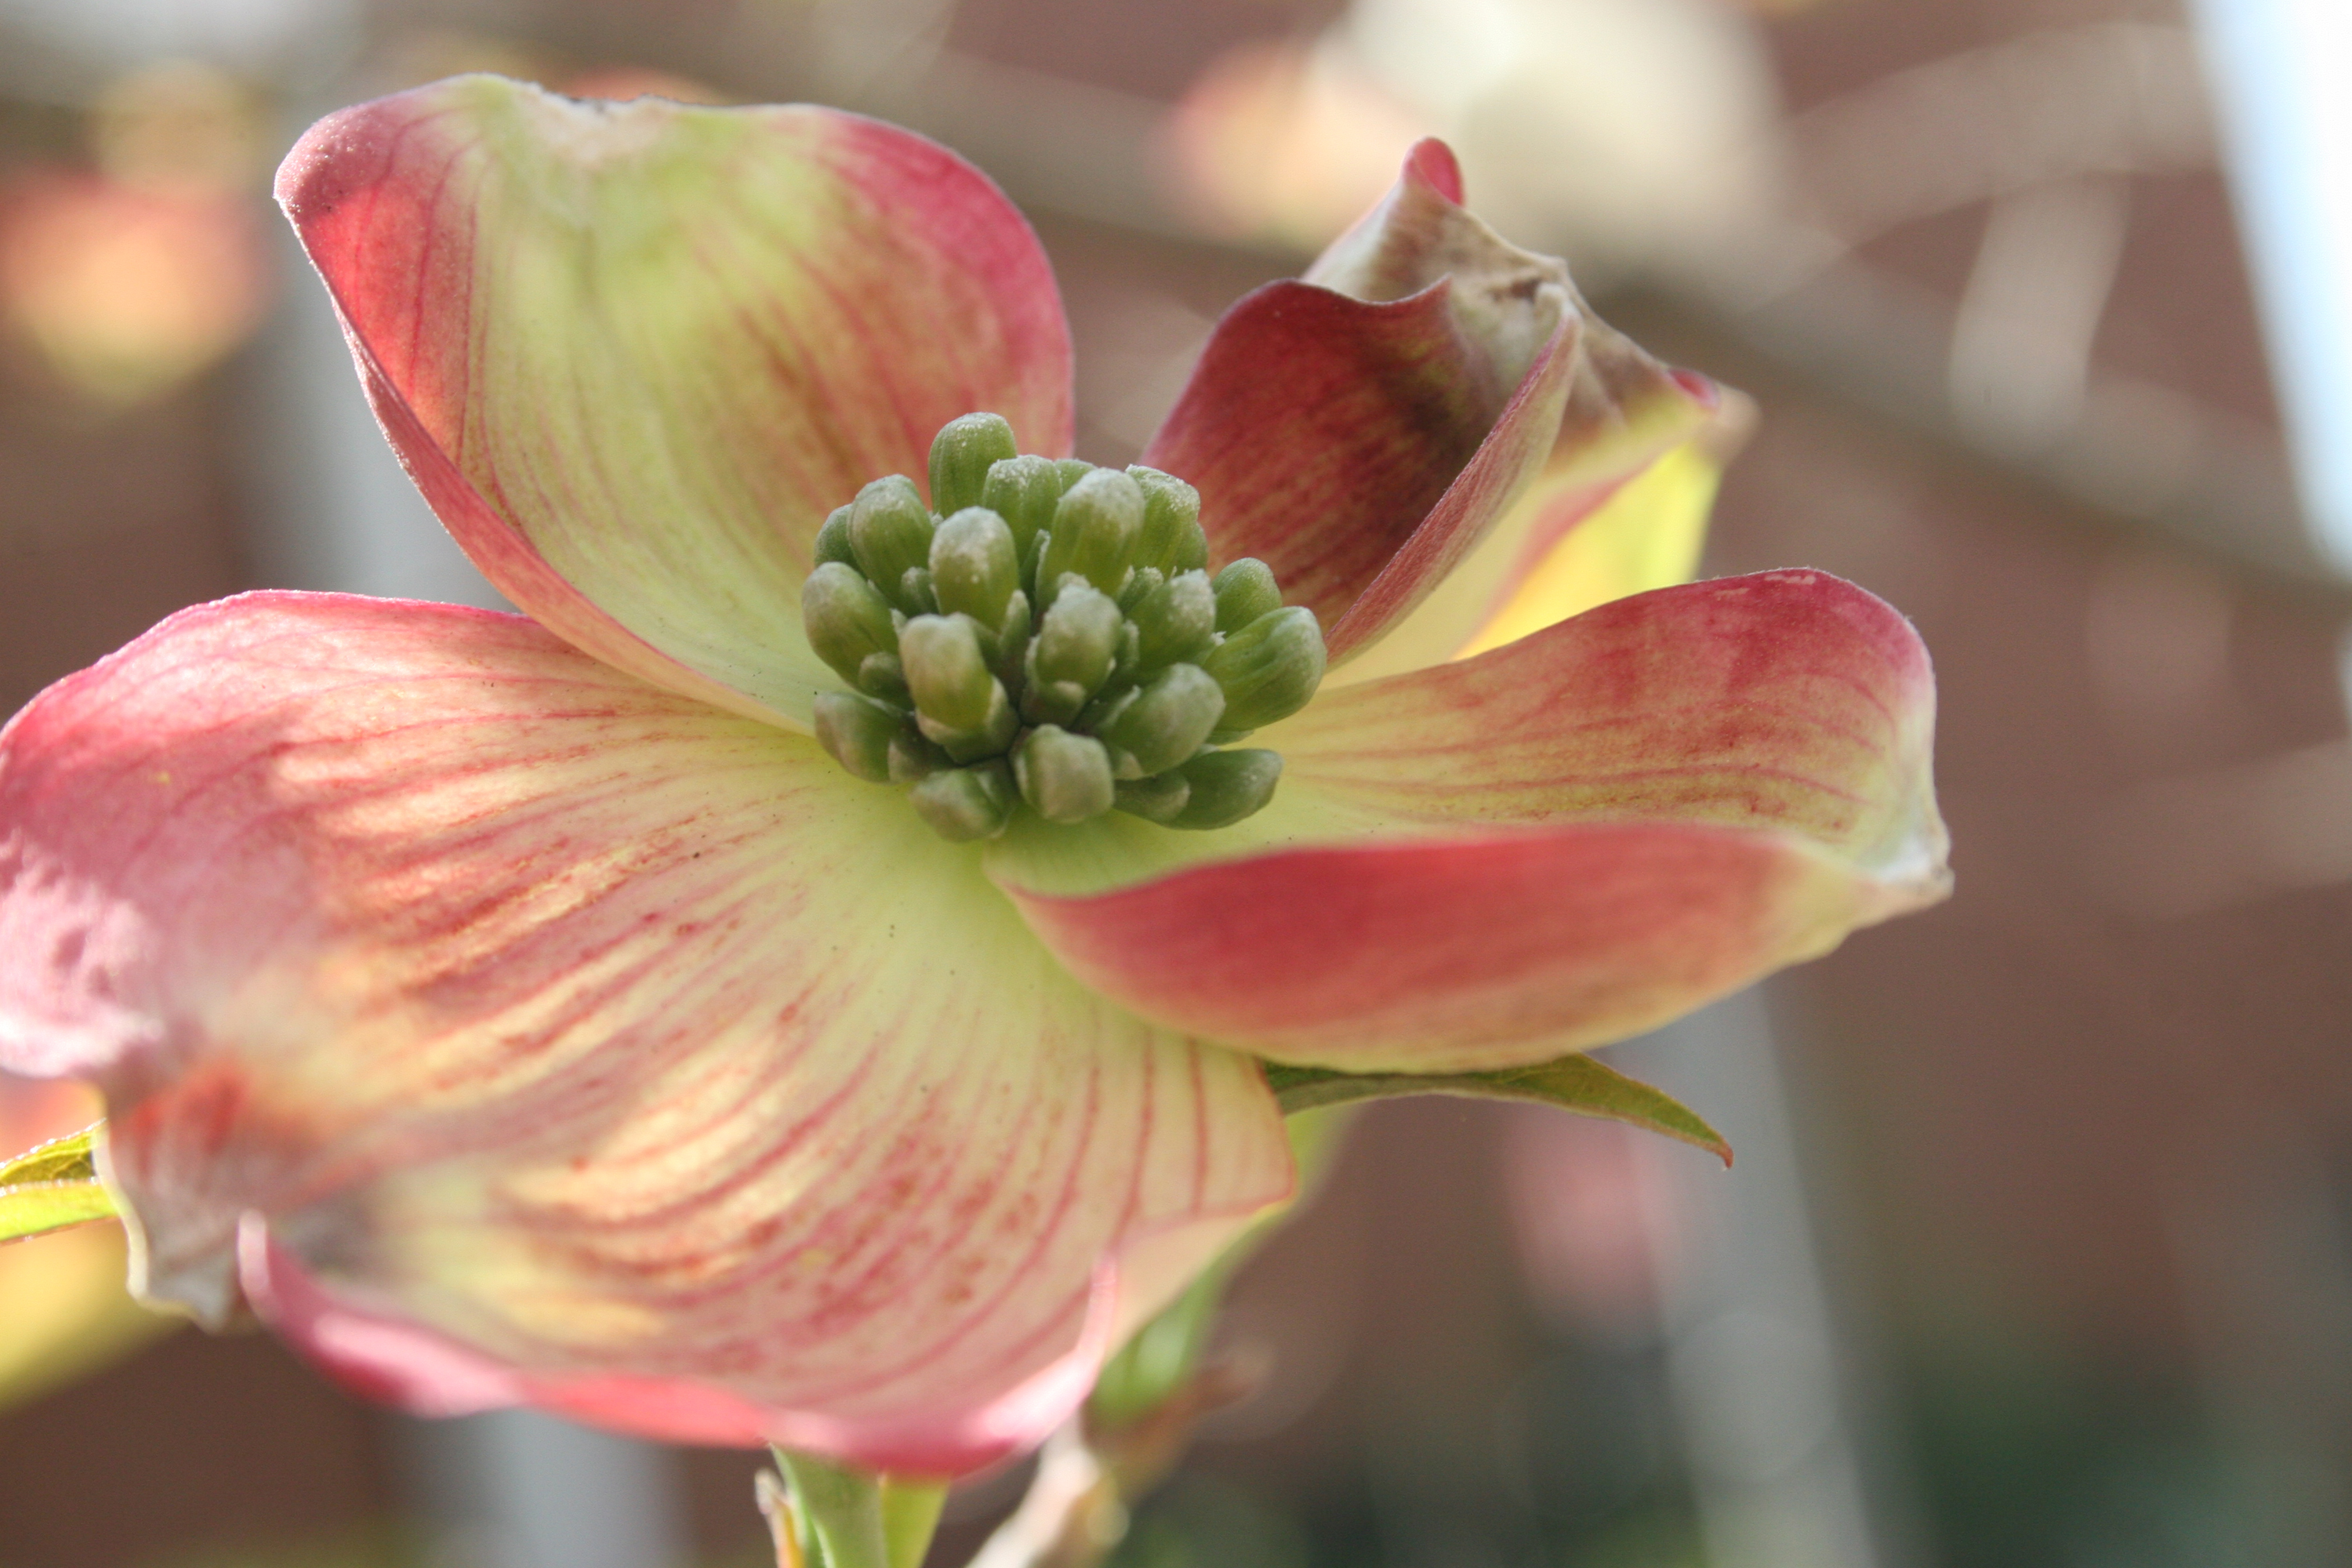 Many trees, like this dogwood, have showy flowers that are not only useful to pollinators, but also very attractive additions to landscapes.